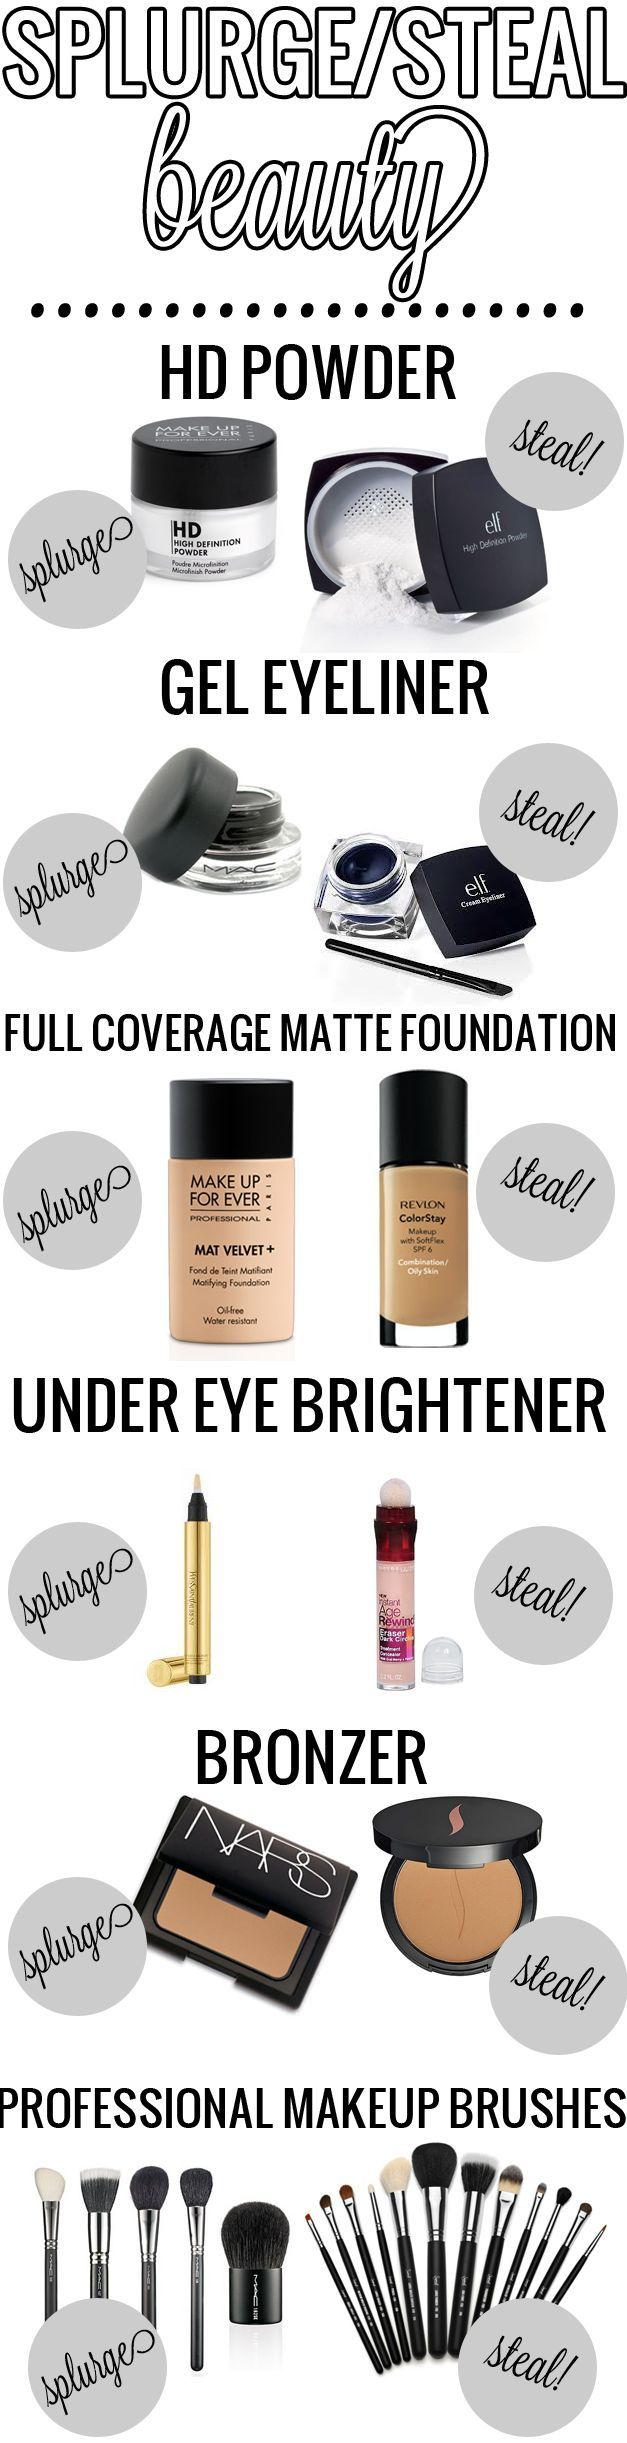 Splurge / Steal Make up Dupes